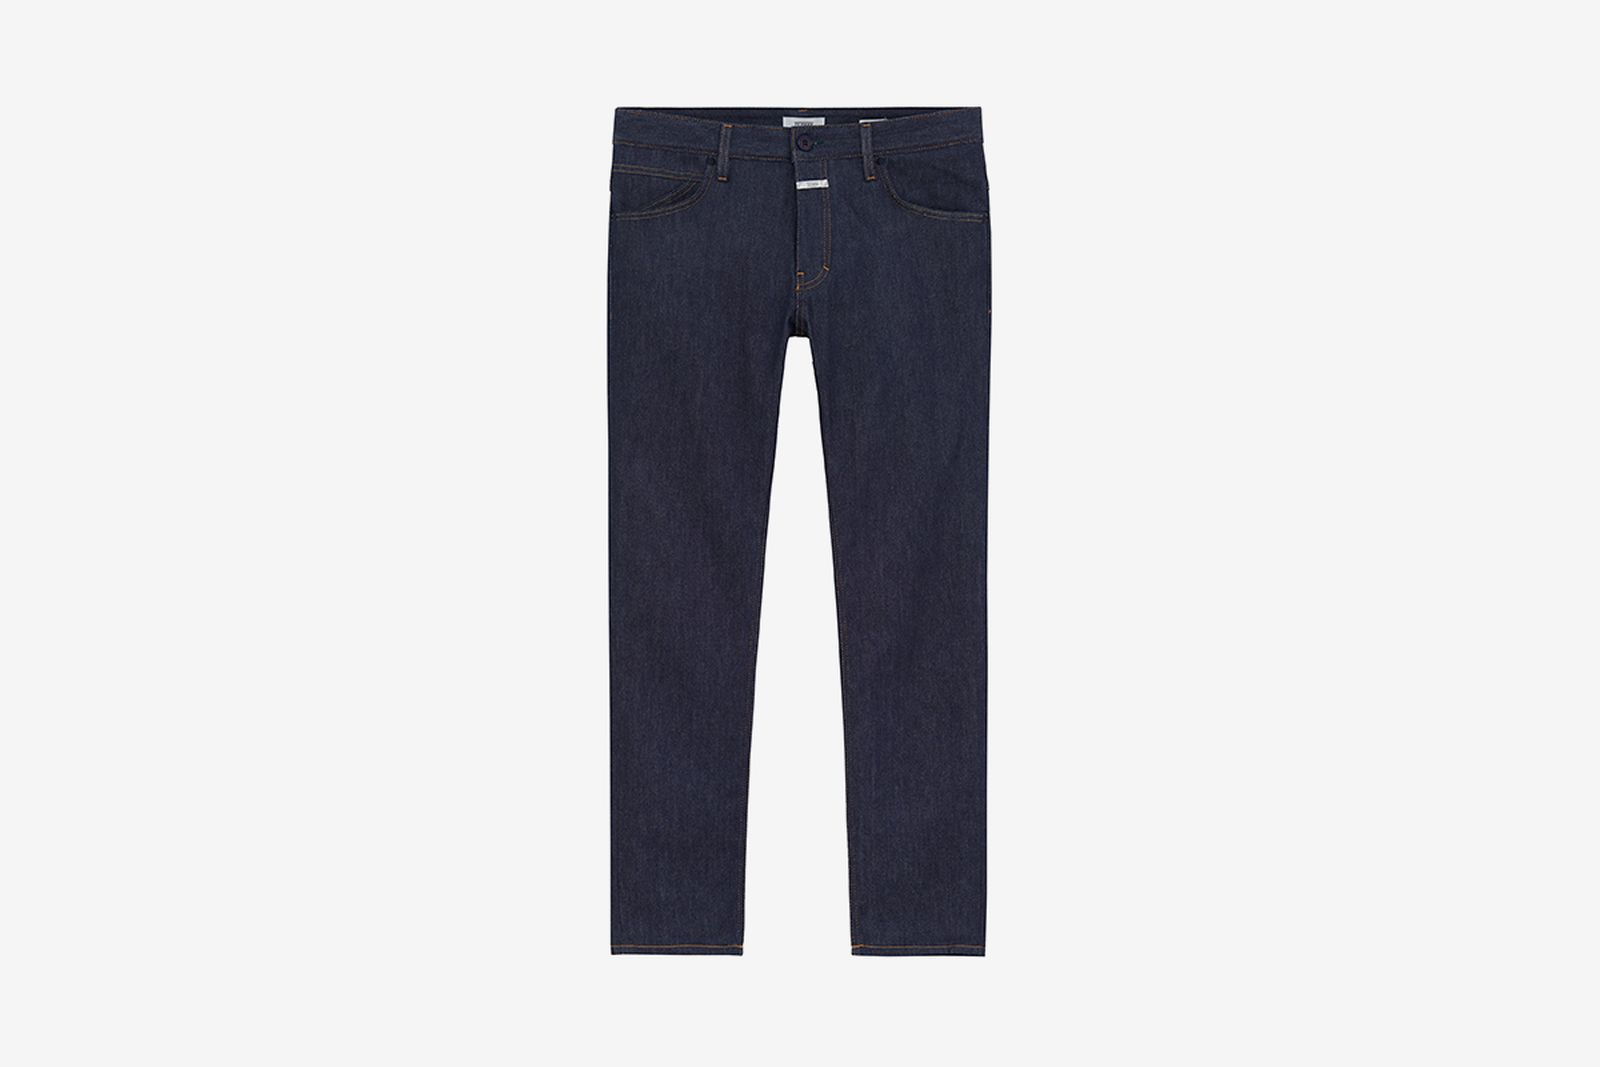 closed-degradable-denim-products-02